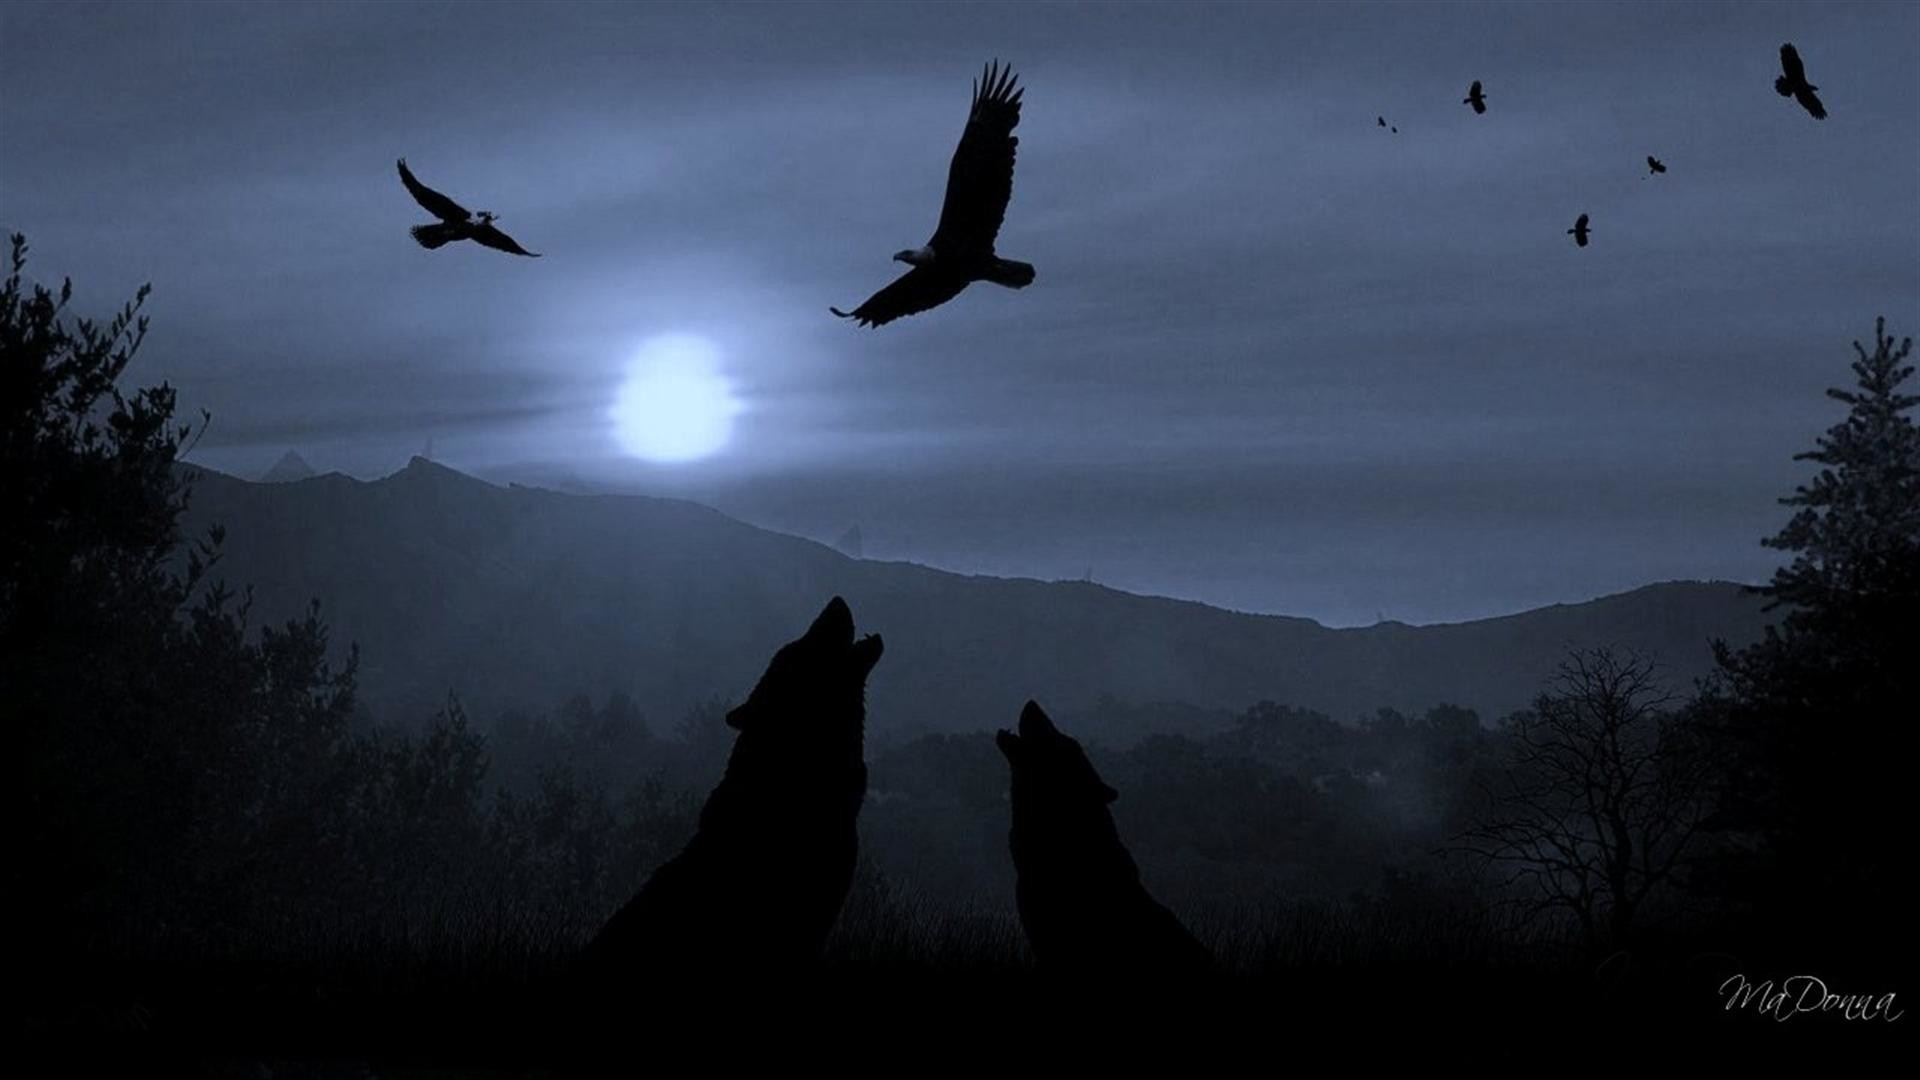 1920x1080 3149) Dark Wolf Background HD wallpaper - WalOps.com